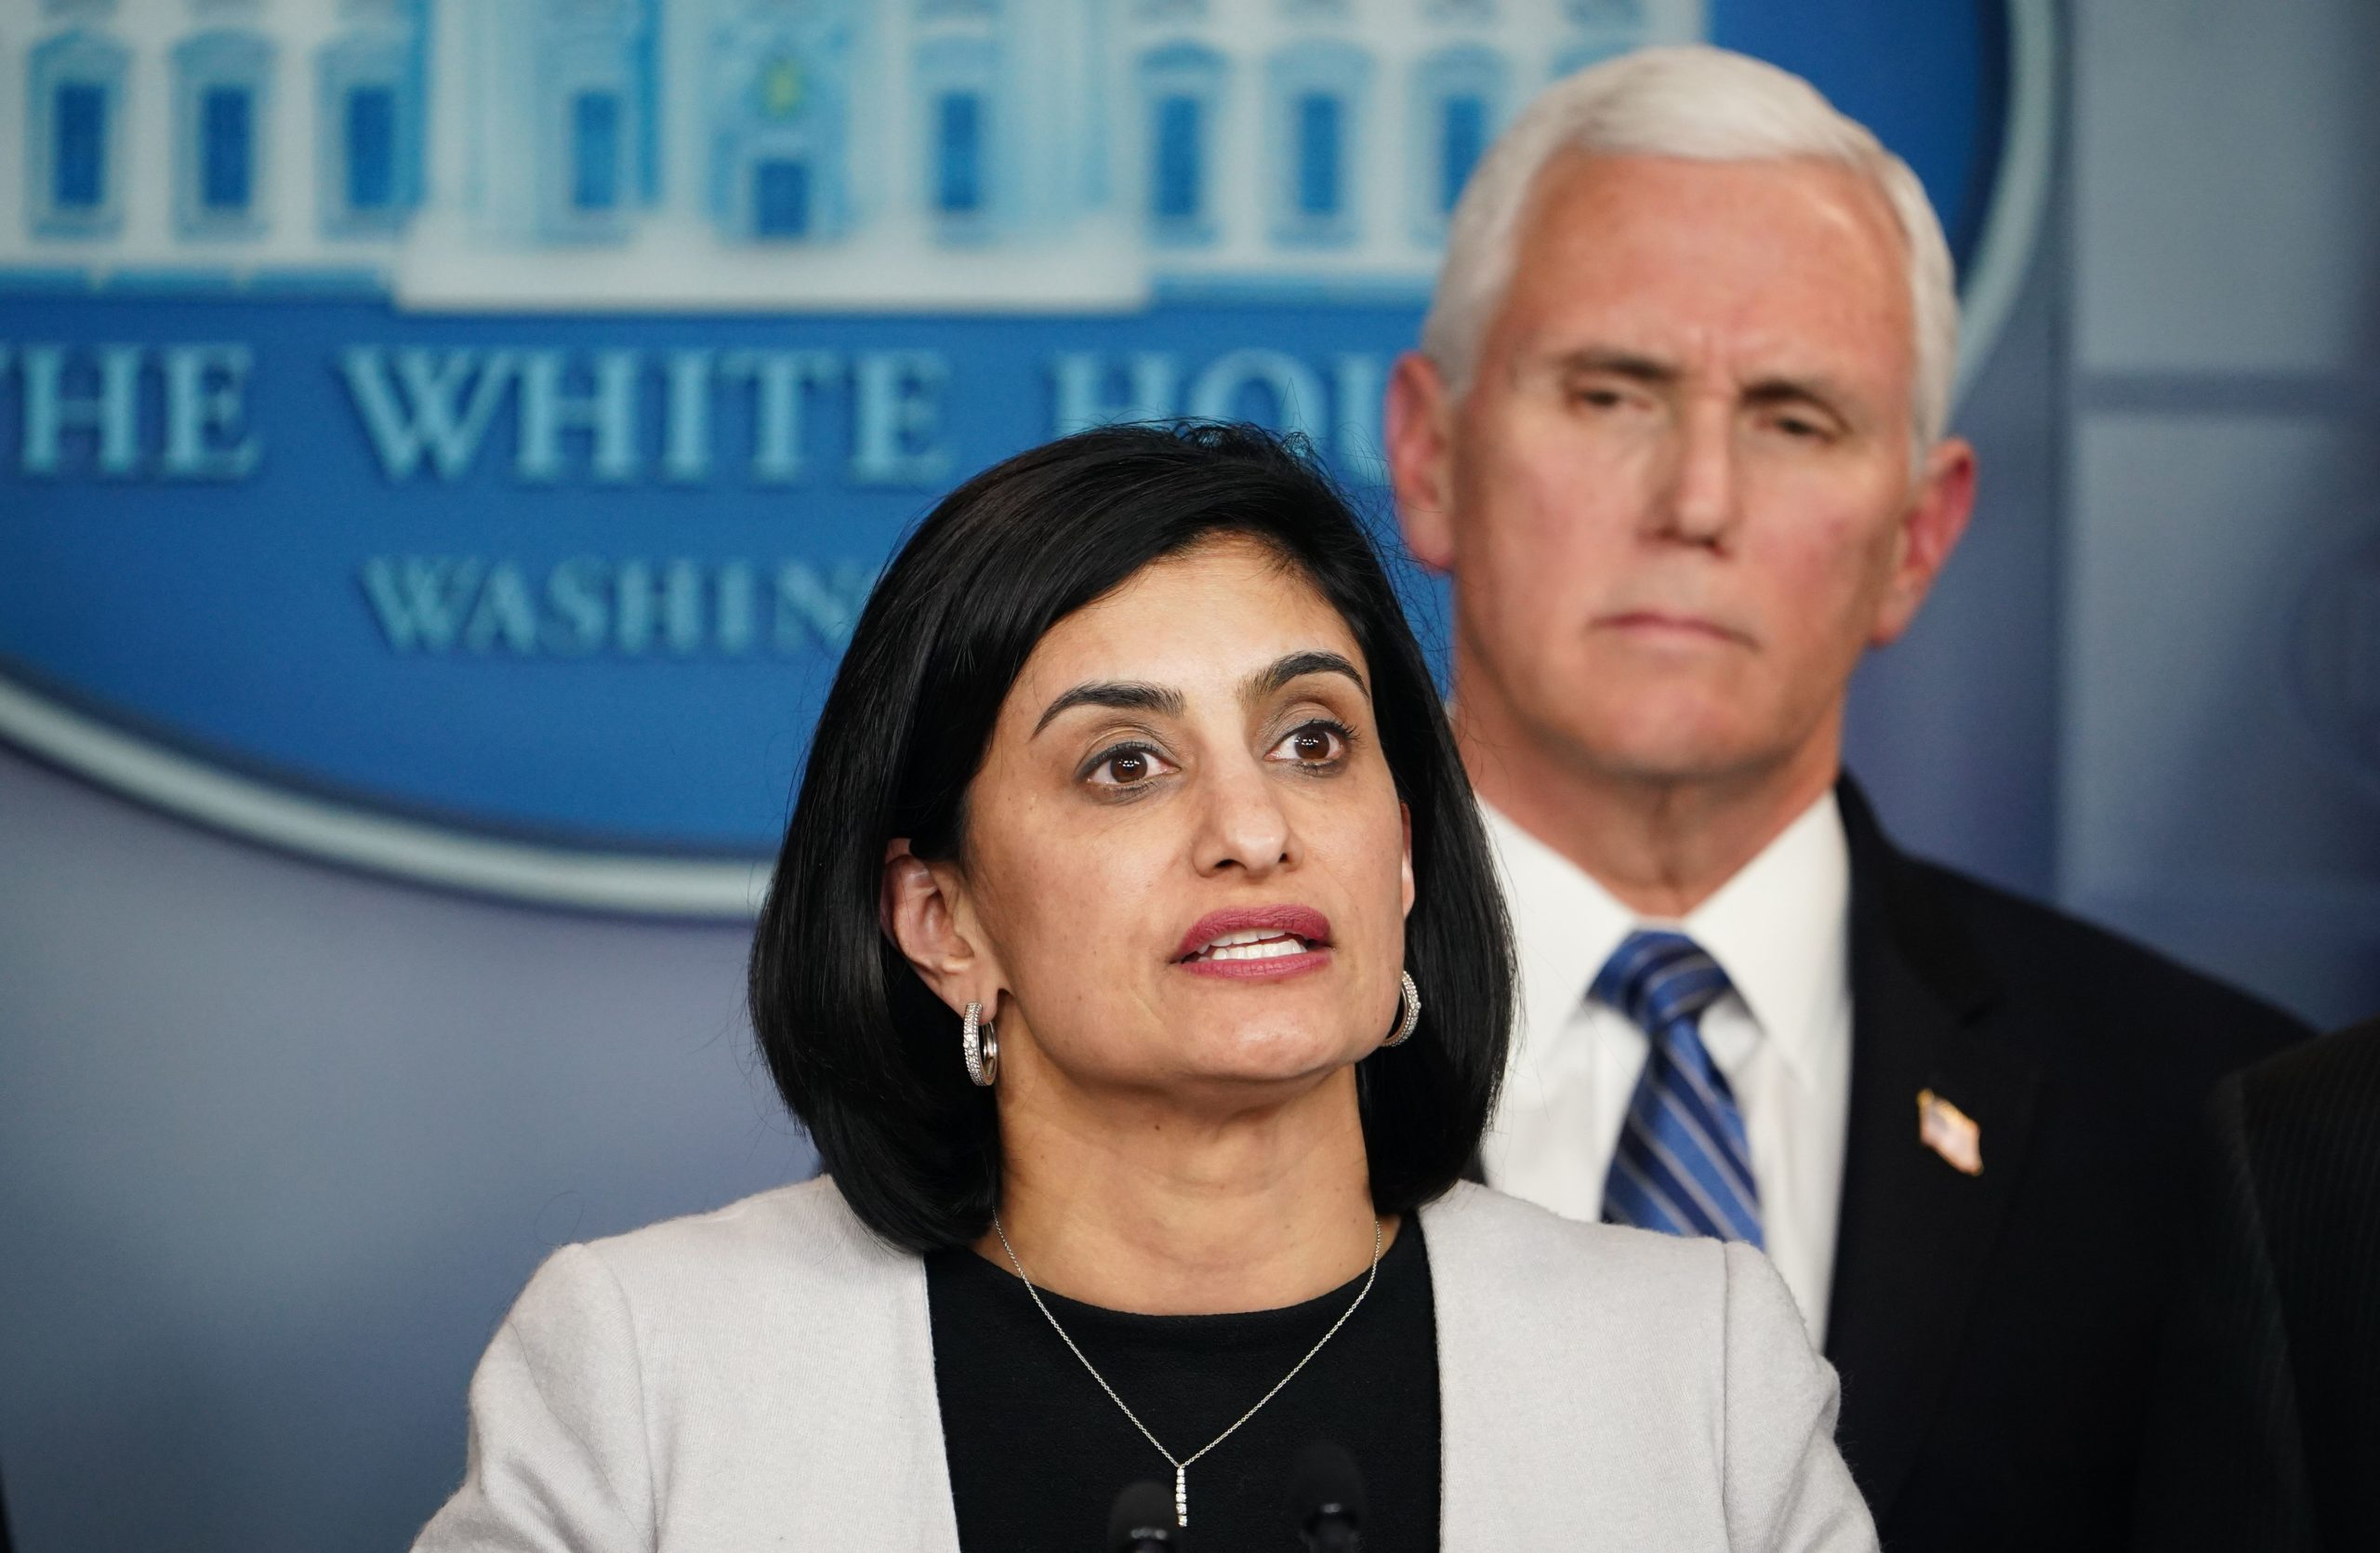 Seema Verma, administrator of the Centers for Medicare and Medicaid Services, and US Vice President Mike Pence (R) speak along with members of the coronavirus take force during a press briefing at the White House in Washington, DC on March 2, 2020. (Photo by MANDEL NGAN/AFP via Getty Images)